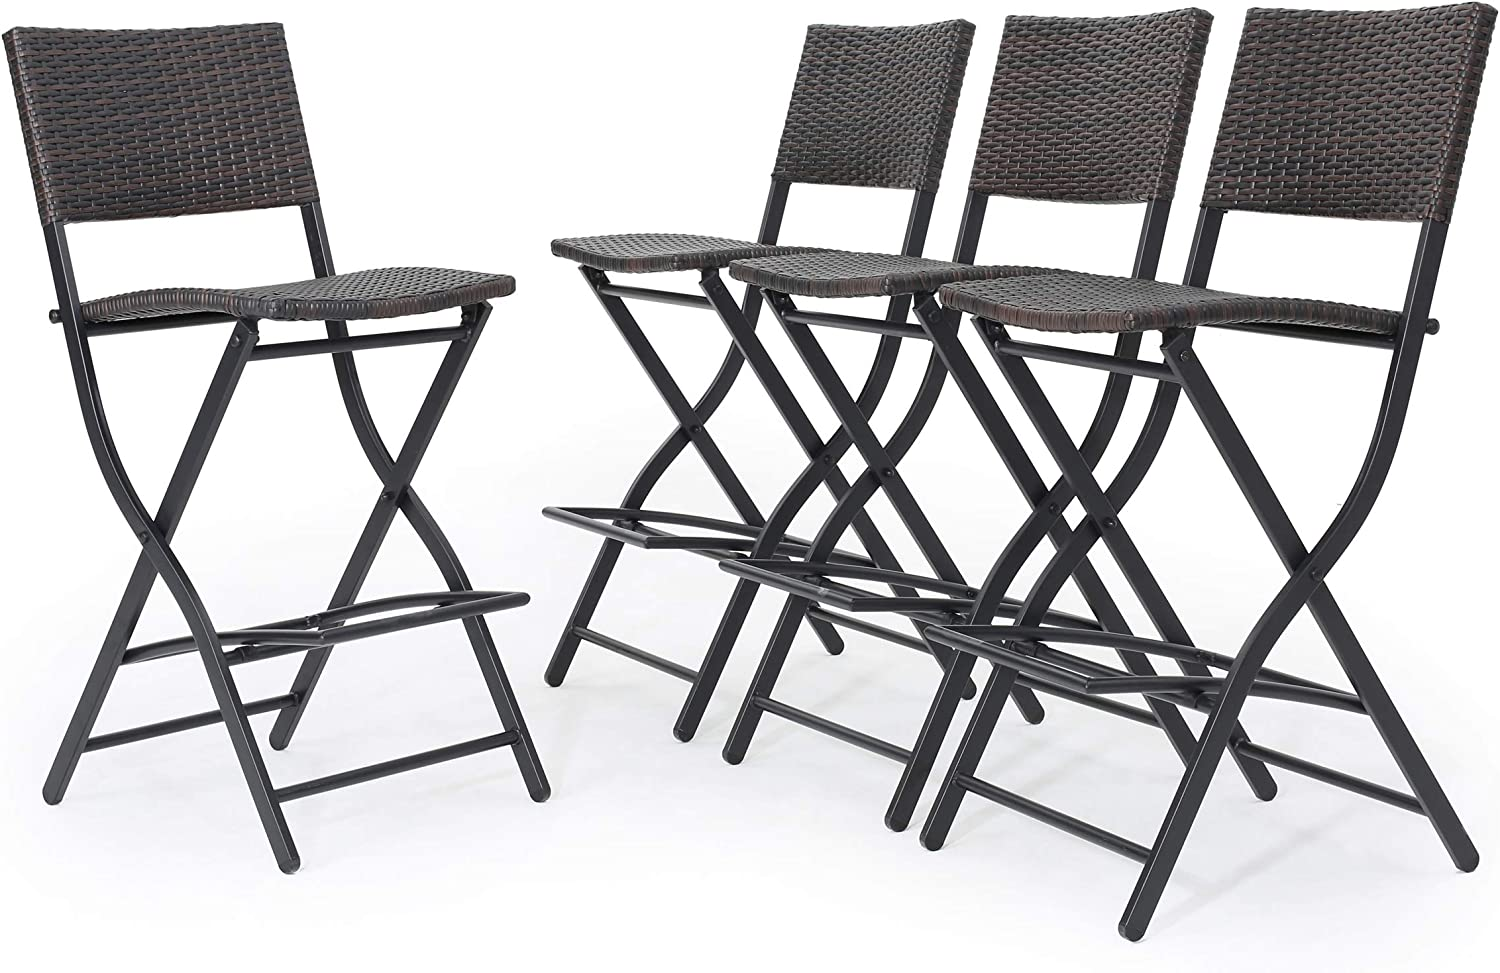 Christopher Knight Home 300304 Marinelli Outdoor Multibrown Wicker Barstools Set of 4